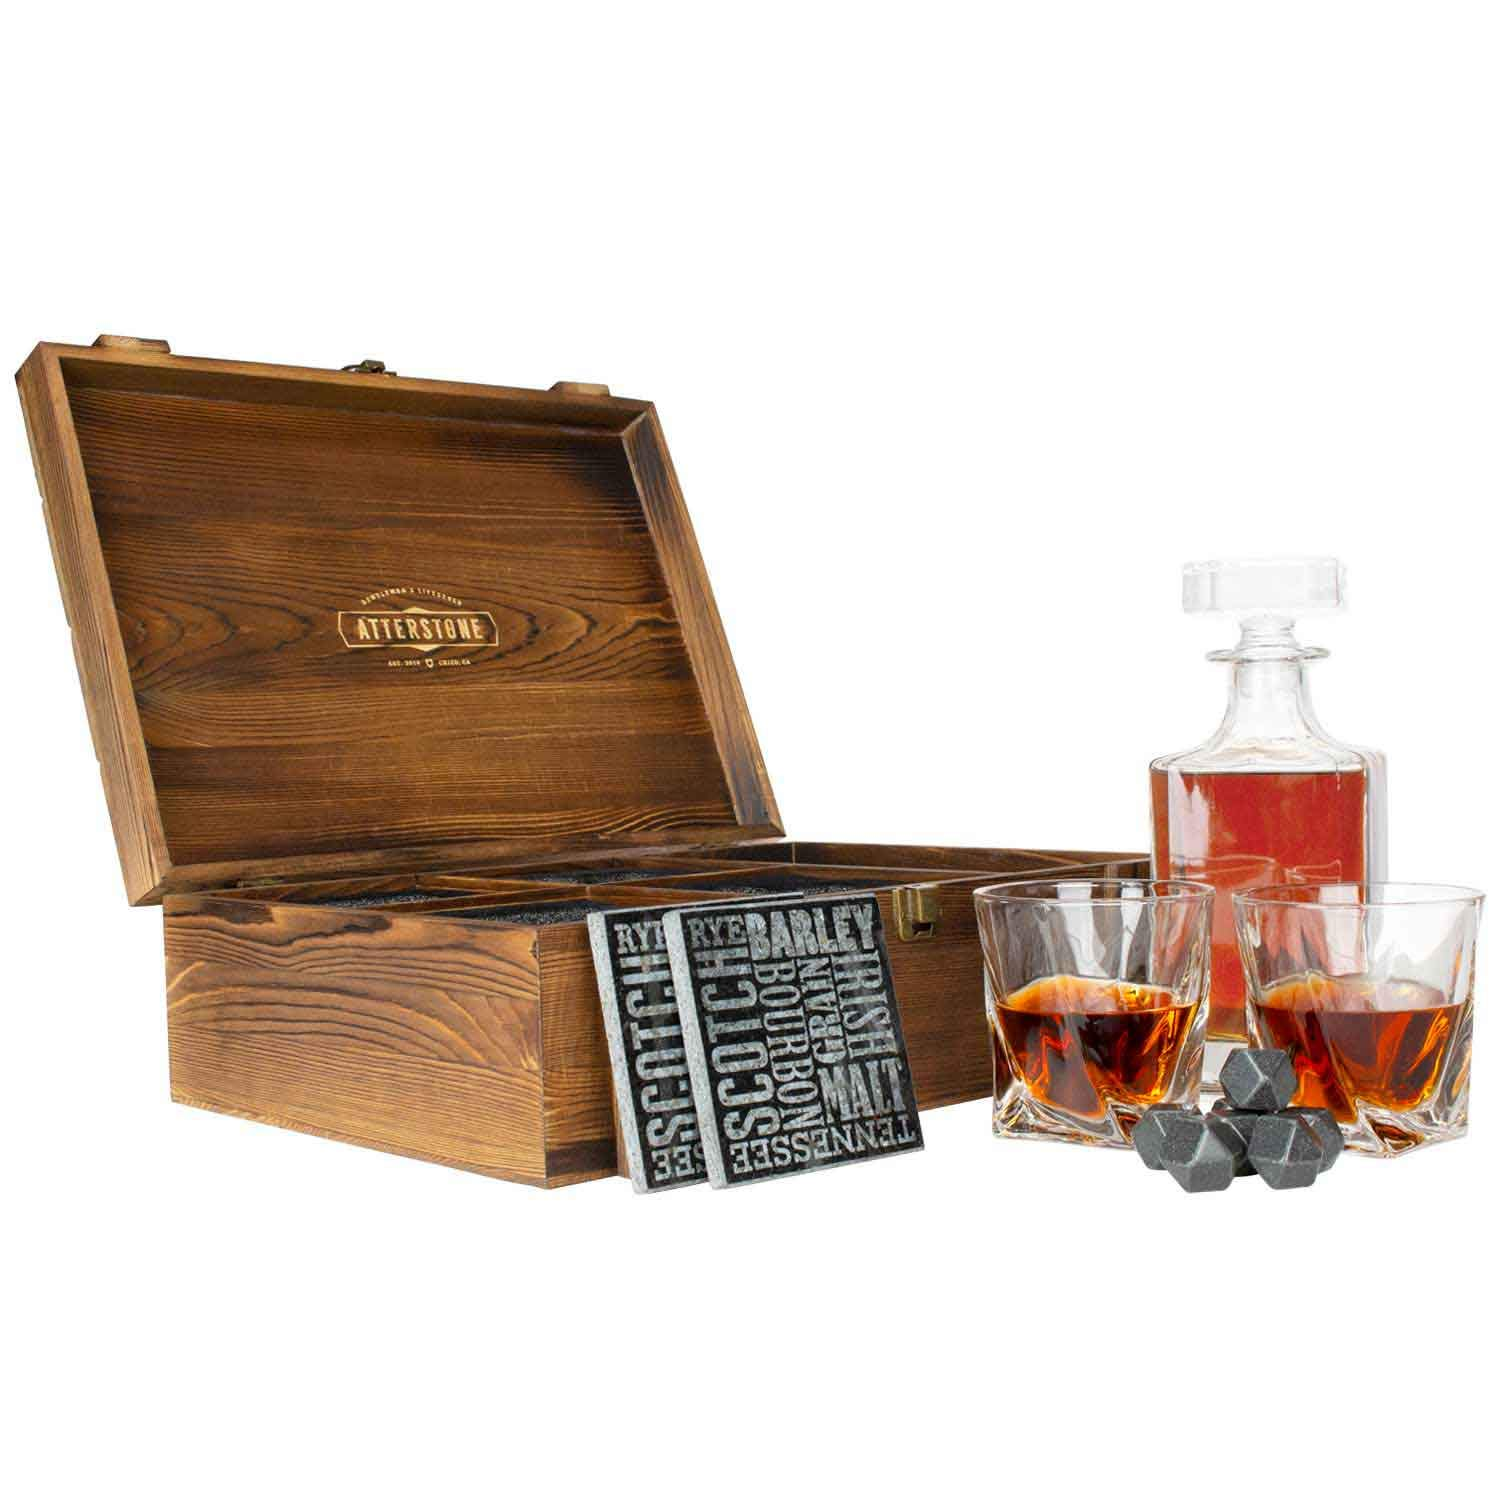 Atterstone Crate Whiskey Box Set with Premium Decanter and 2 Swirl Glasses, Includes 9 Chilling Stones and 2 Dark Stone Coasters, Encased in Polished Wood Box Great for Holiday and Wedding Gifts by Atterstone (Image #1)